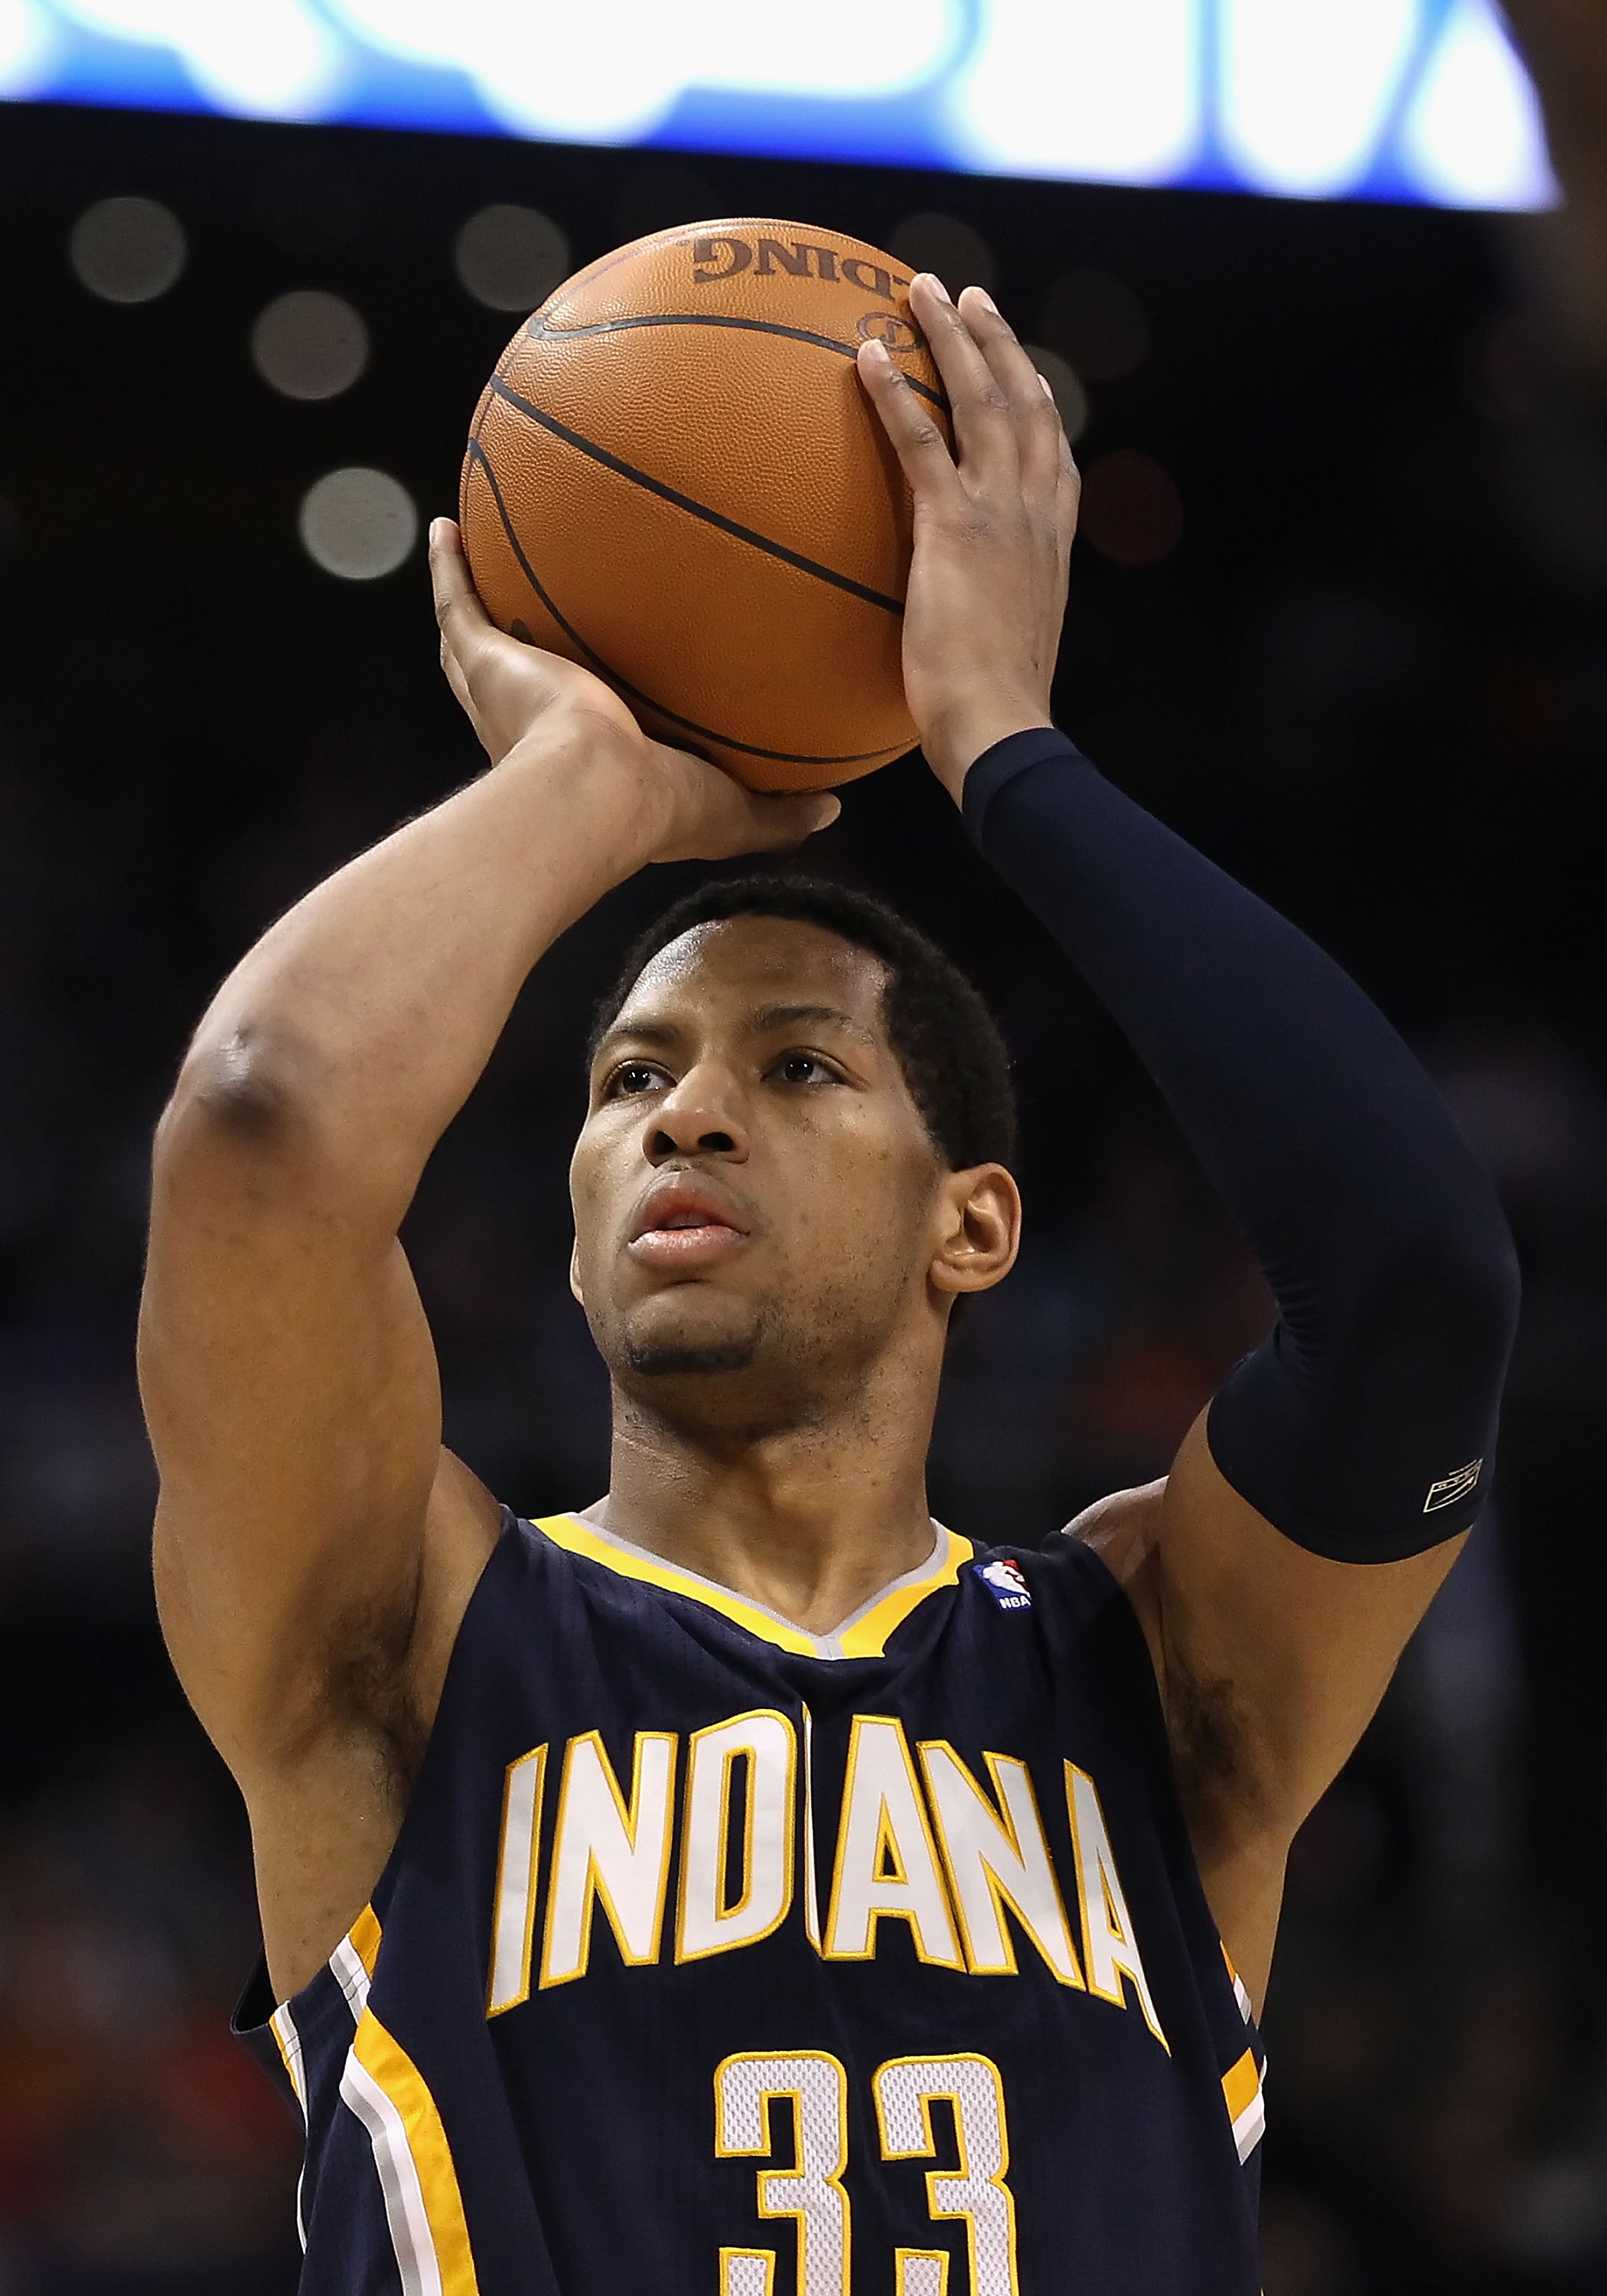 Danny Granger is one of the best players no one ever talks about.